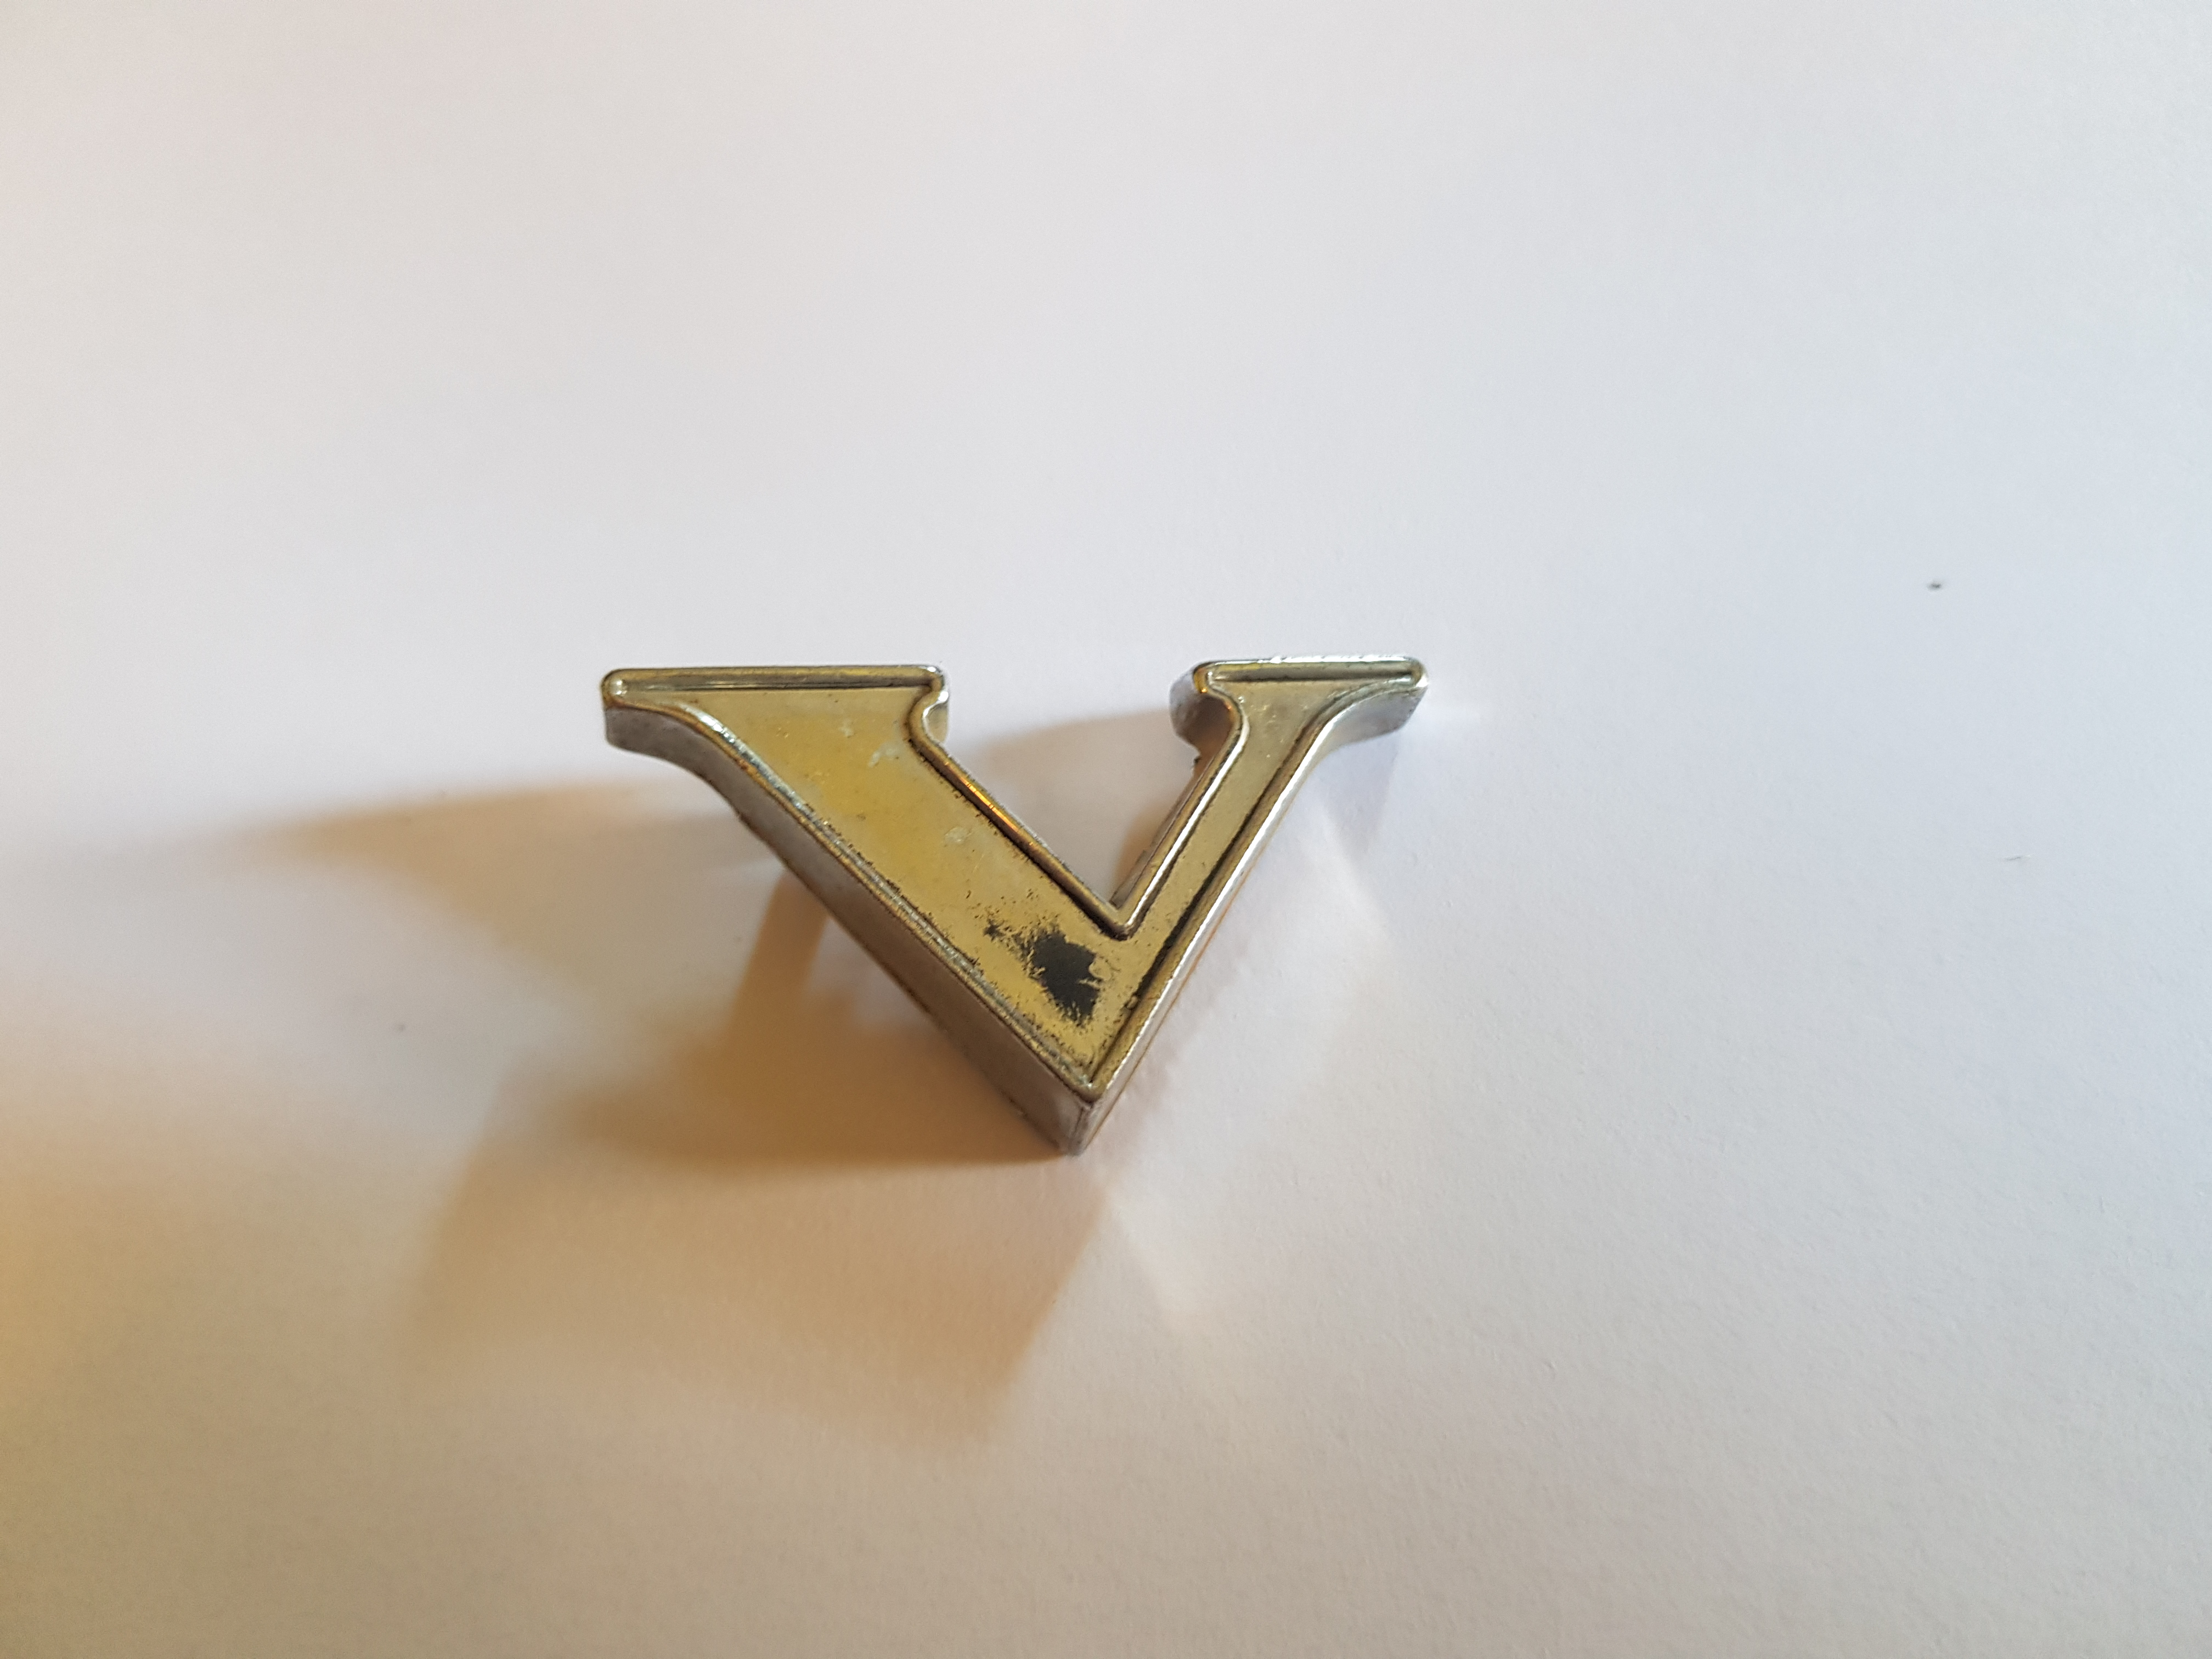 'V' Boot Letter Badge, Salvaged